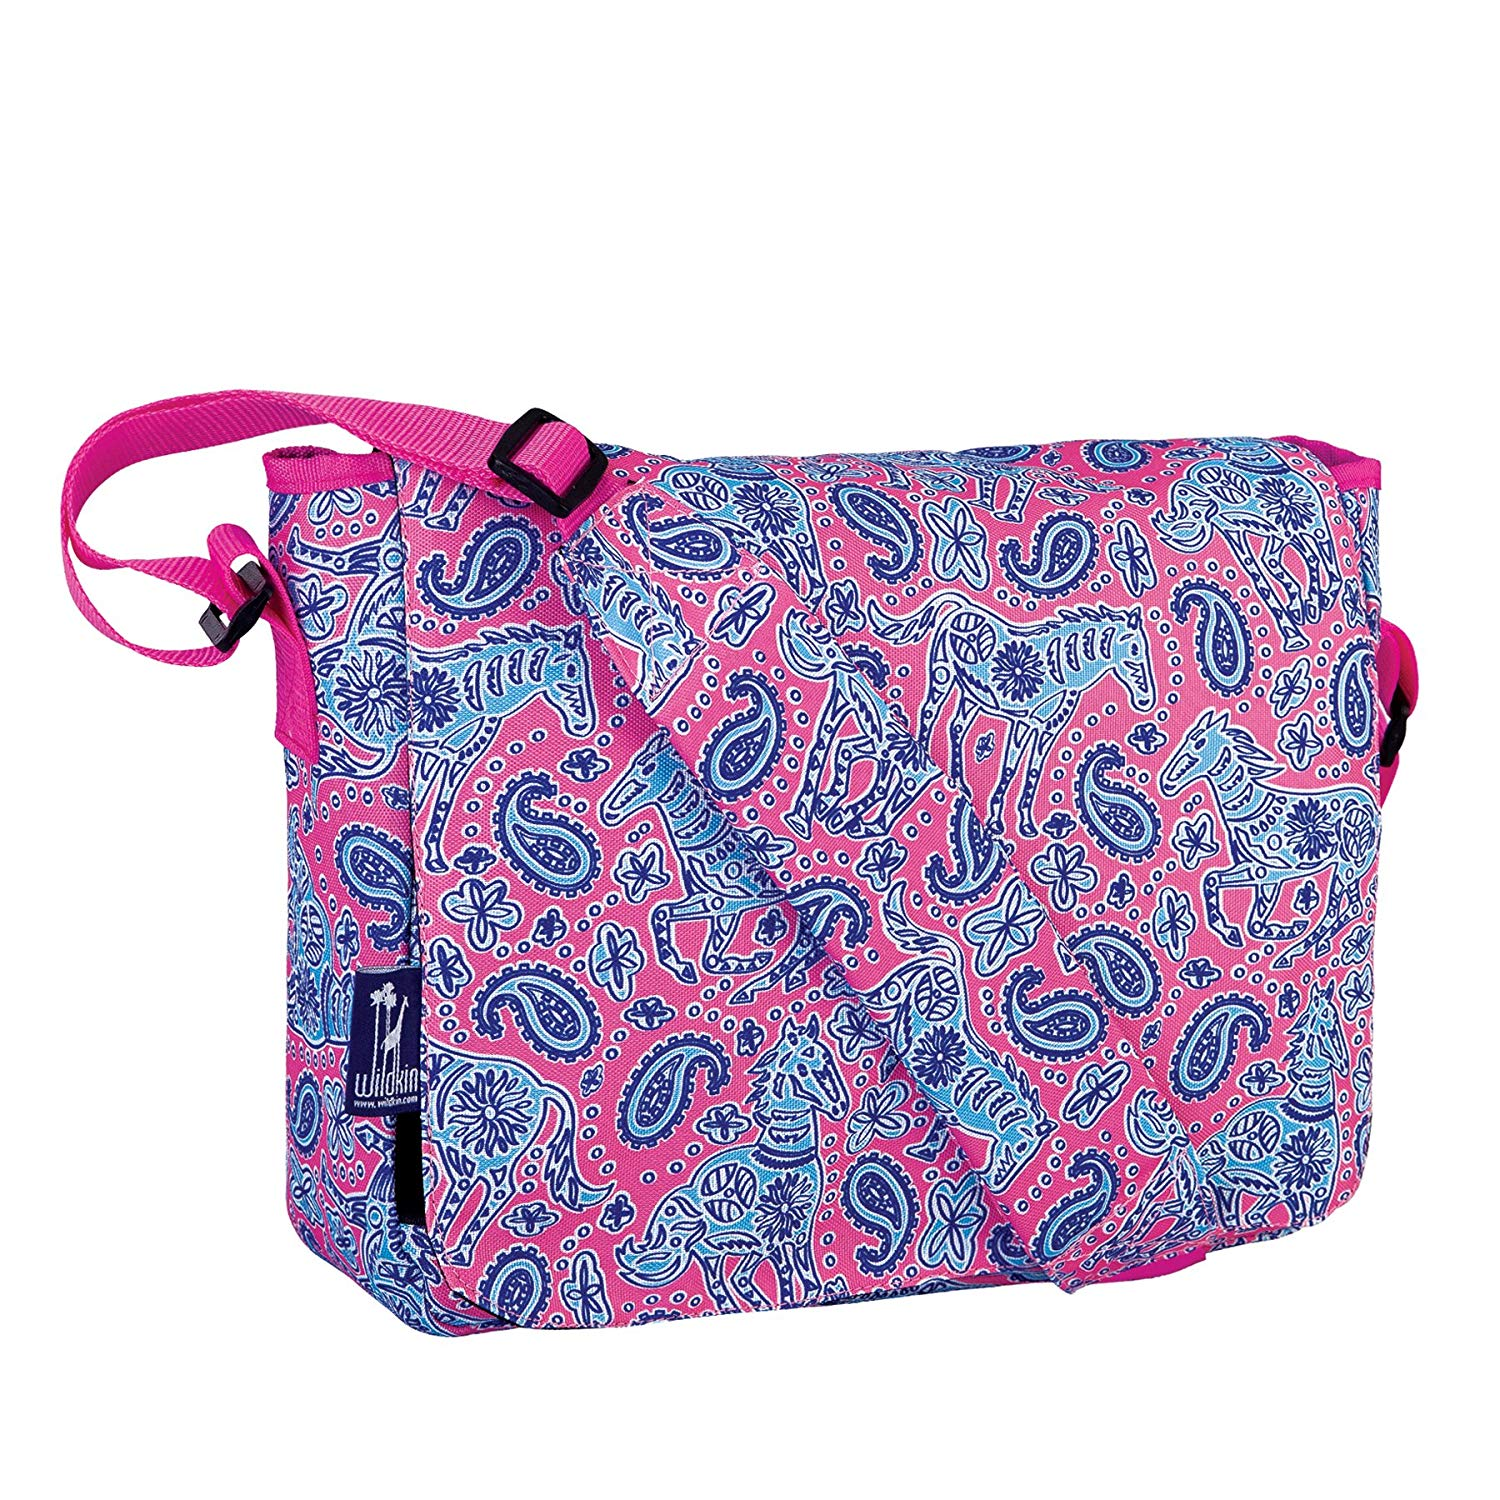 Messenger Bag, Wildkin 13 x 10 Inch Messenger Bag, Includes Interior and Exterior Pockets and Velcro Closure, Ages 8+, Perfect for School, Sports, and Day Trips – Watercolor Ponies Pink